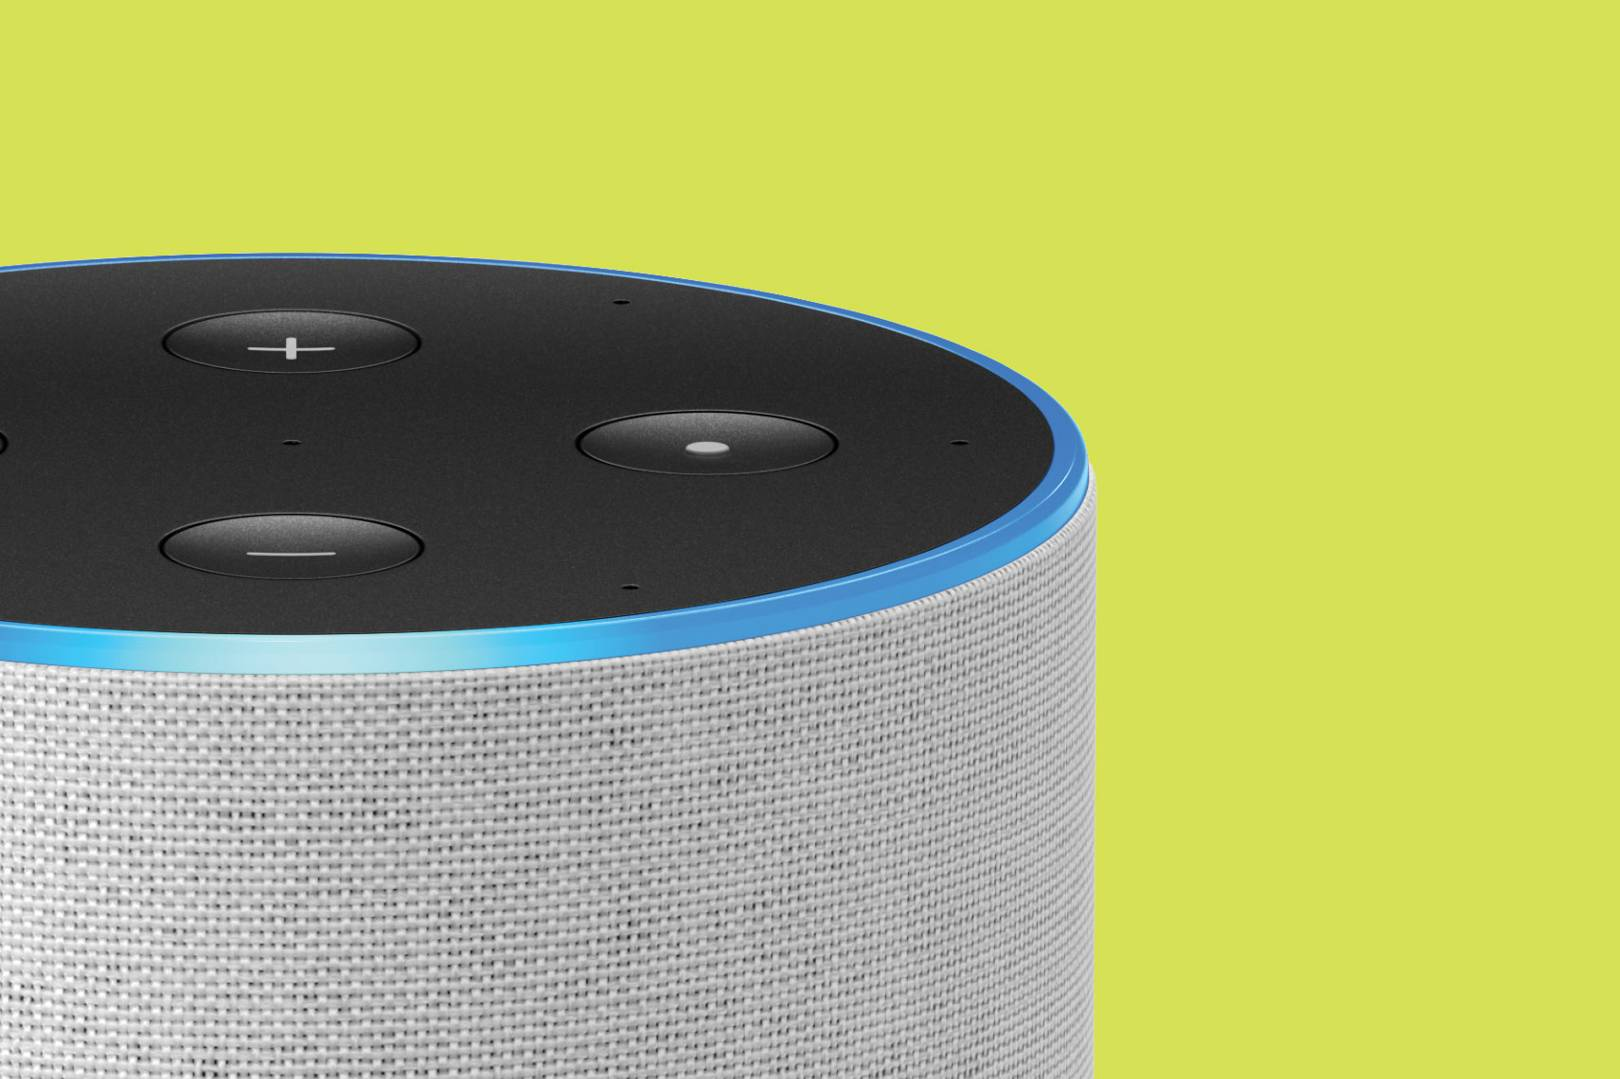 Amazon Echo Vs Plus Show Spot And Dot Your No Uk Bt Phone Socket Wiring Nonsense Guide Wired